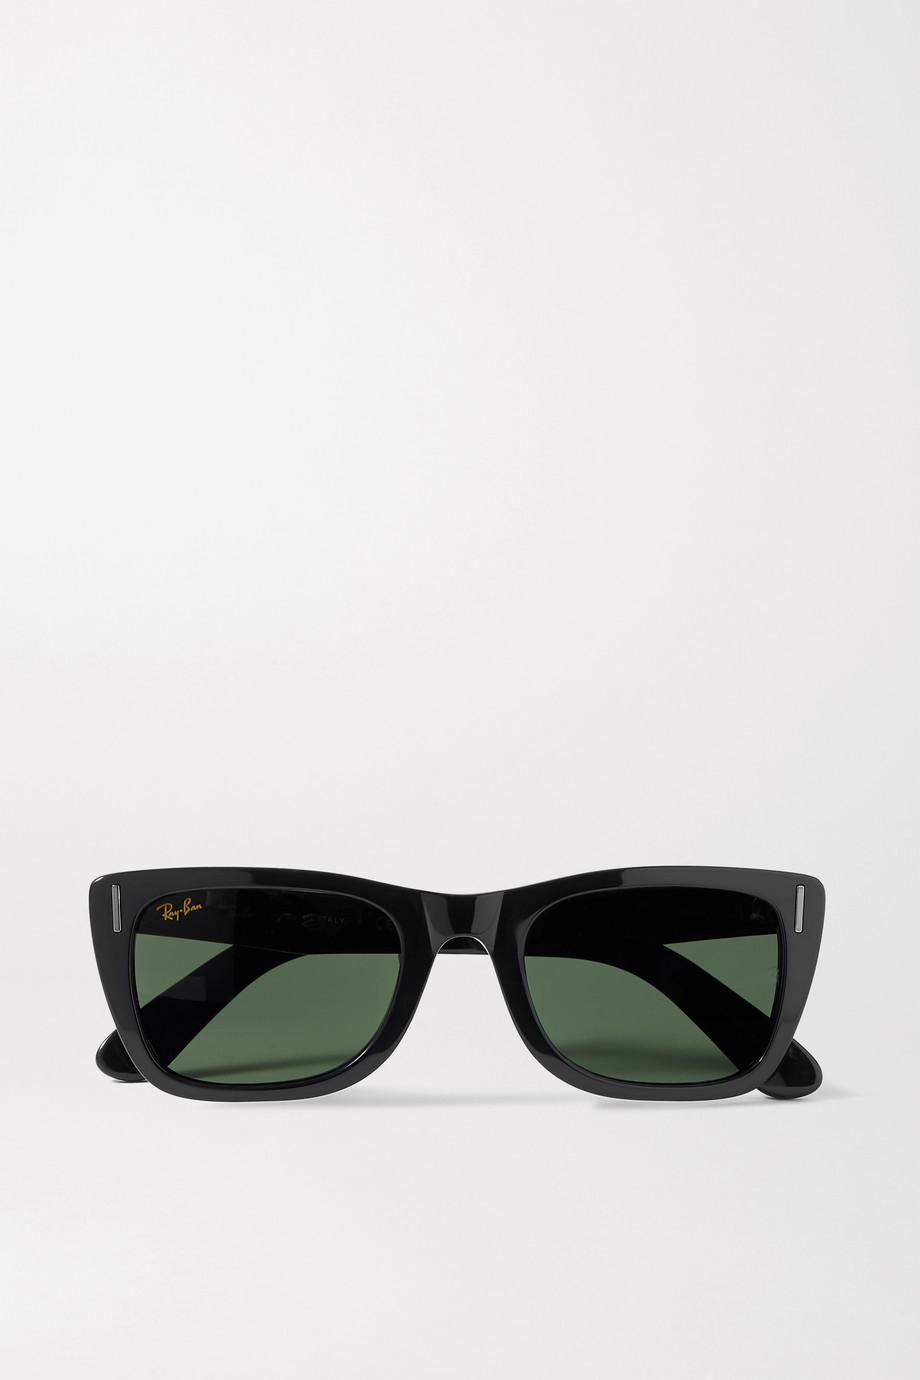 Ray-Ban Caribbean D-frame acetate sunglasses